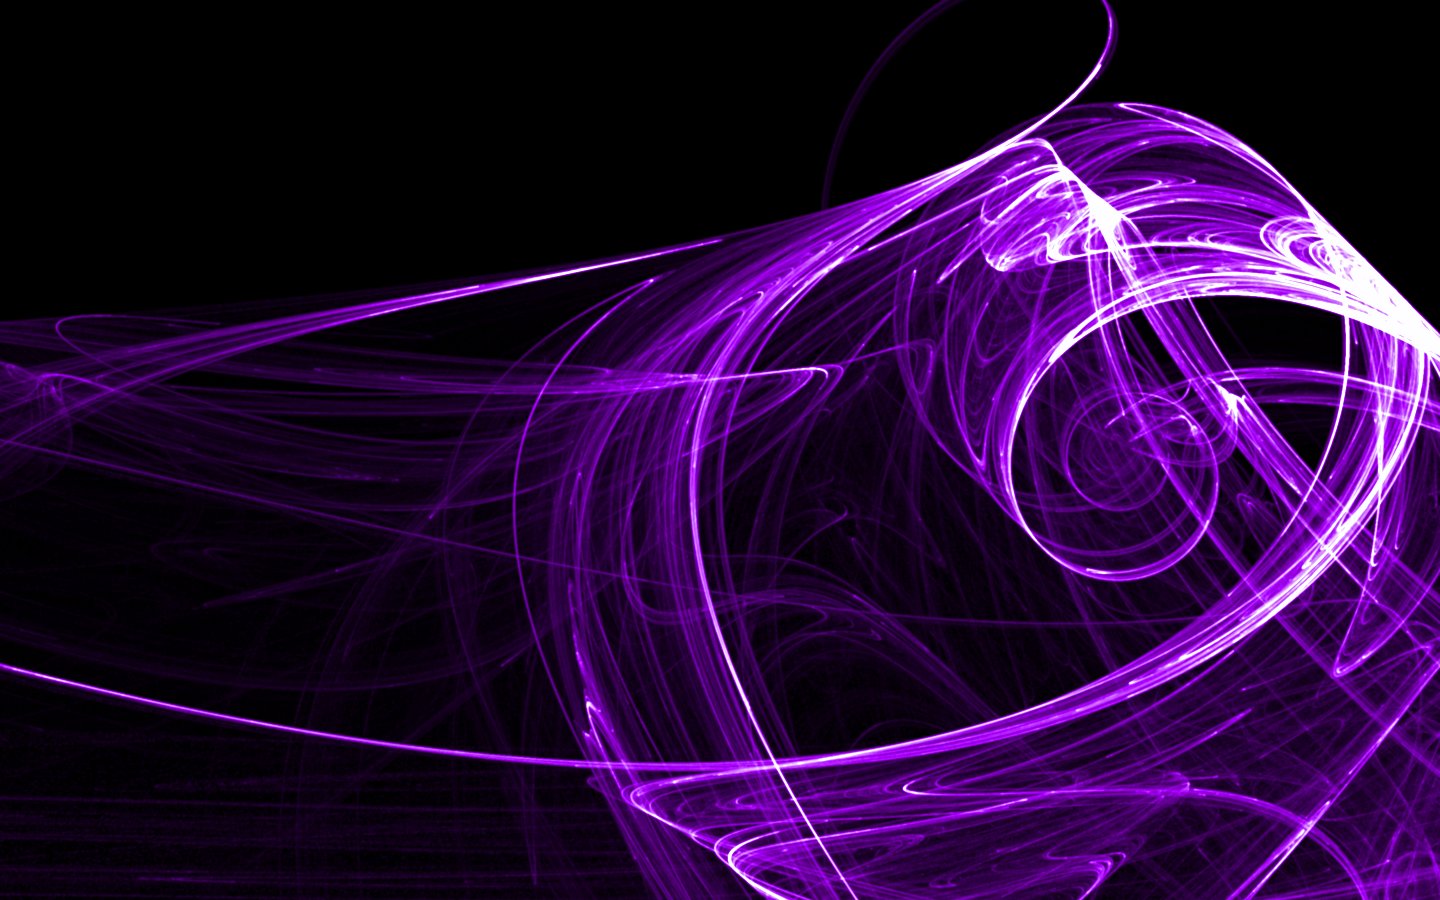 Music vector art colorful wallpaper free download png - Amazing Purple Abstract Art Wallpaper